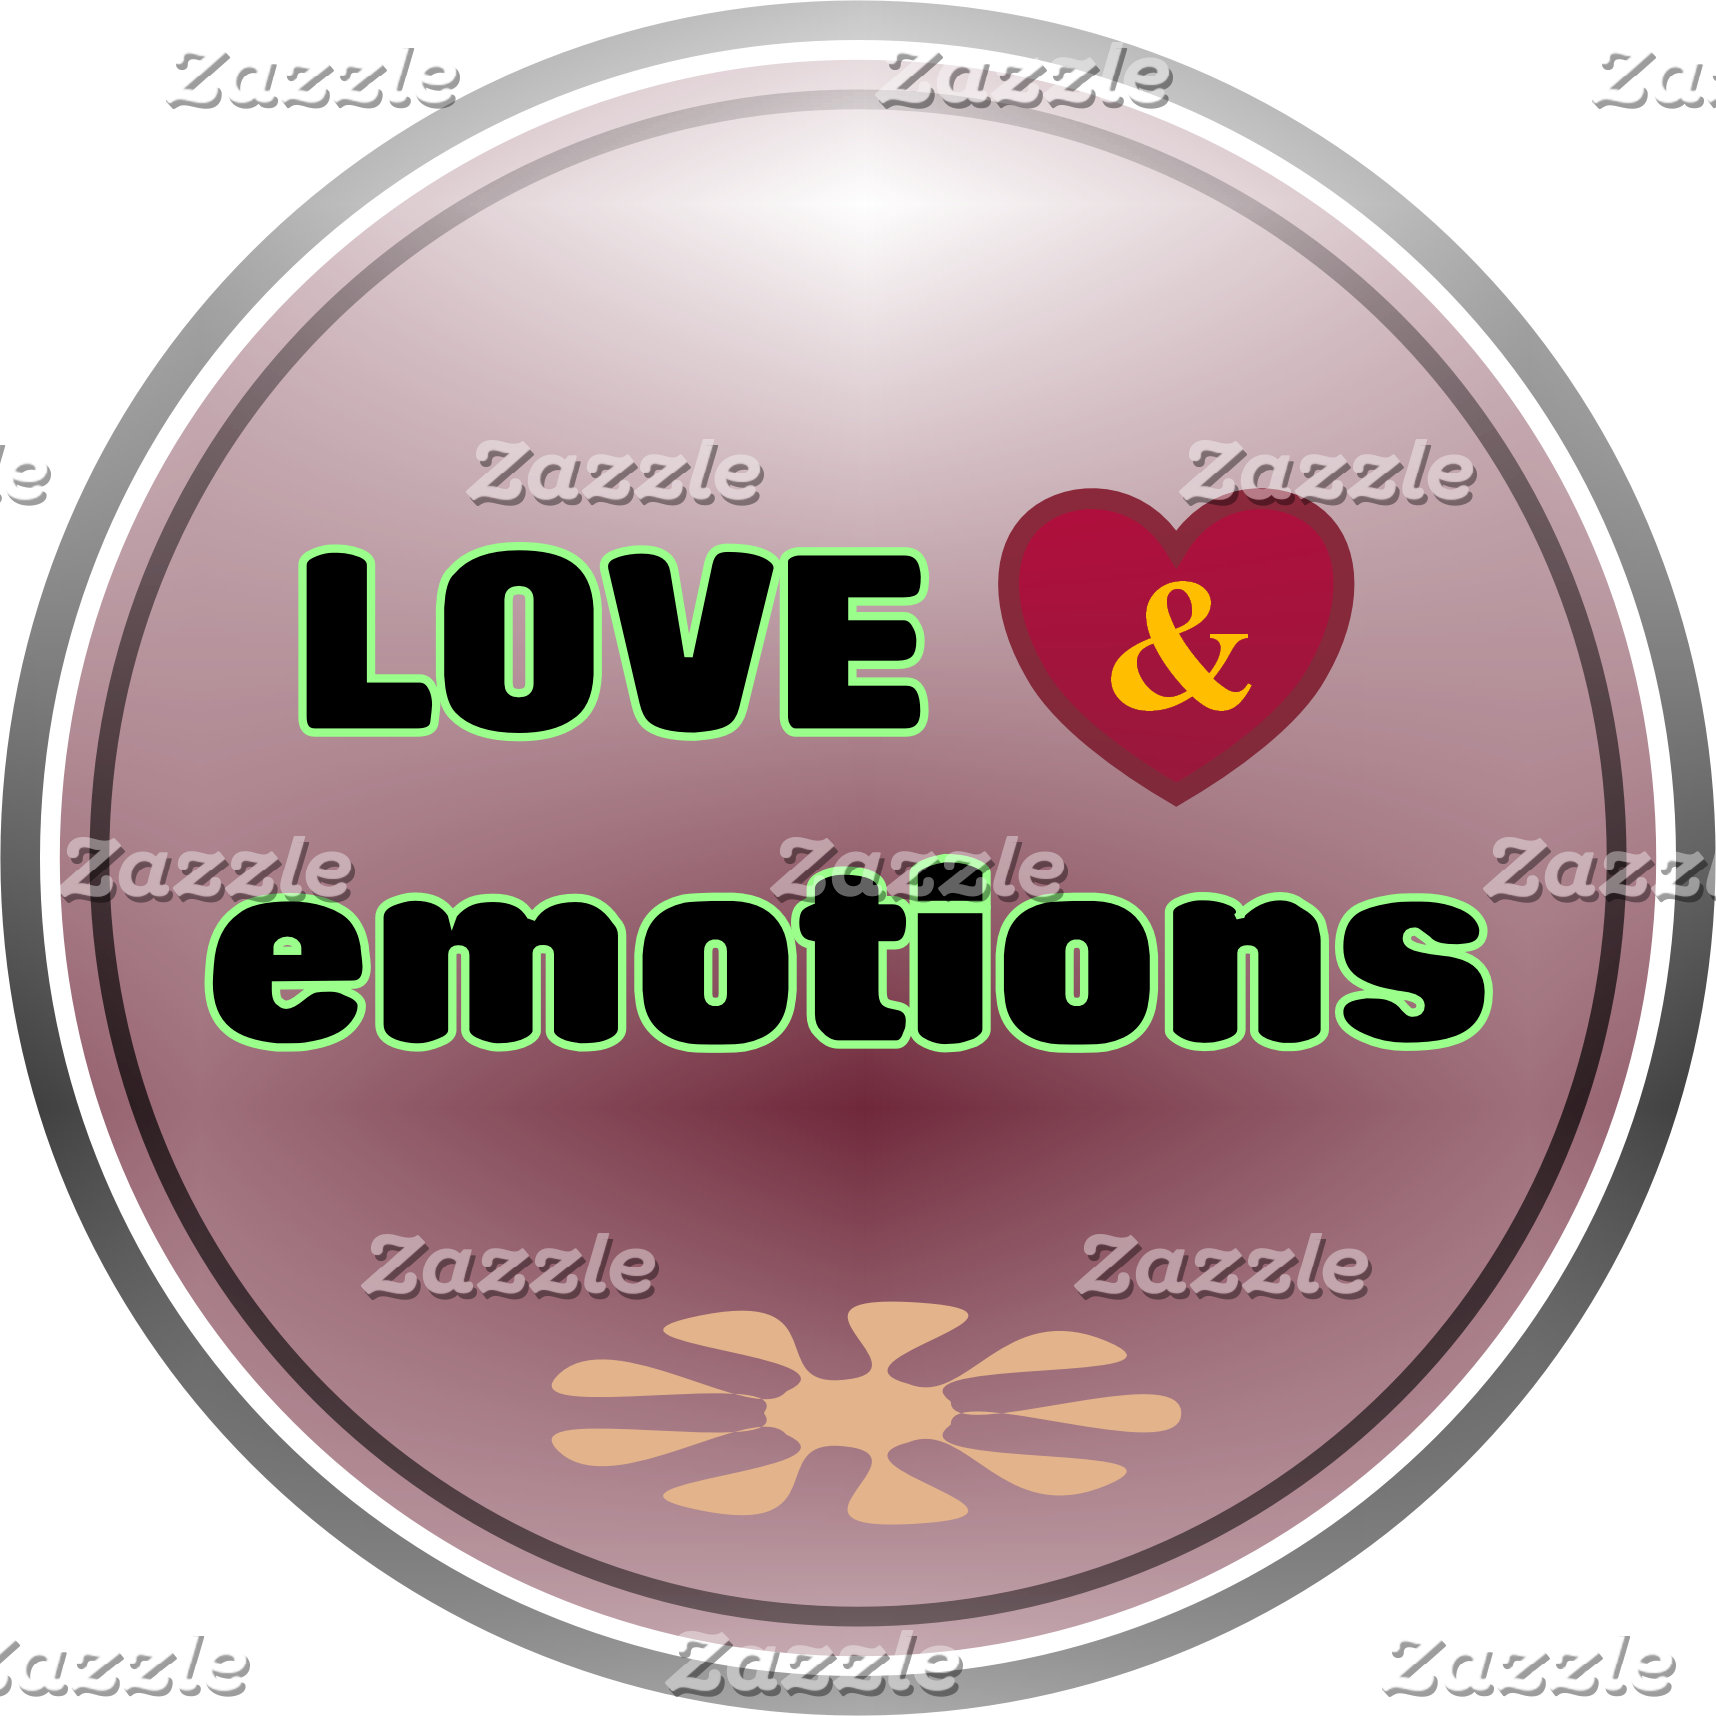 Love & emotions